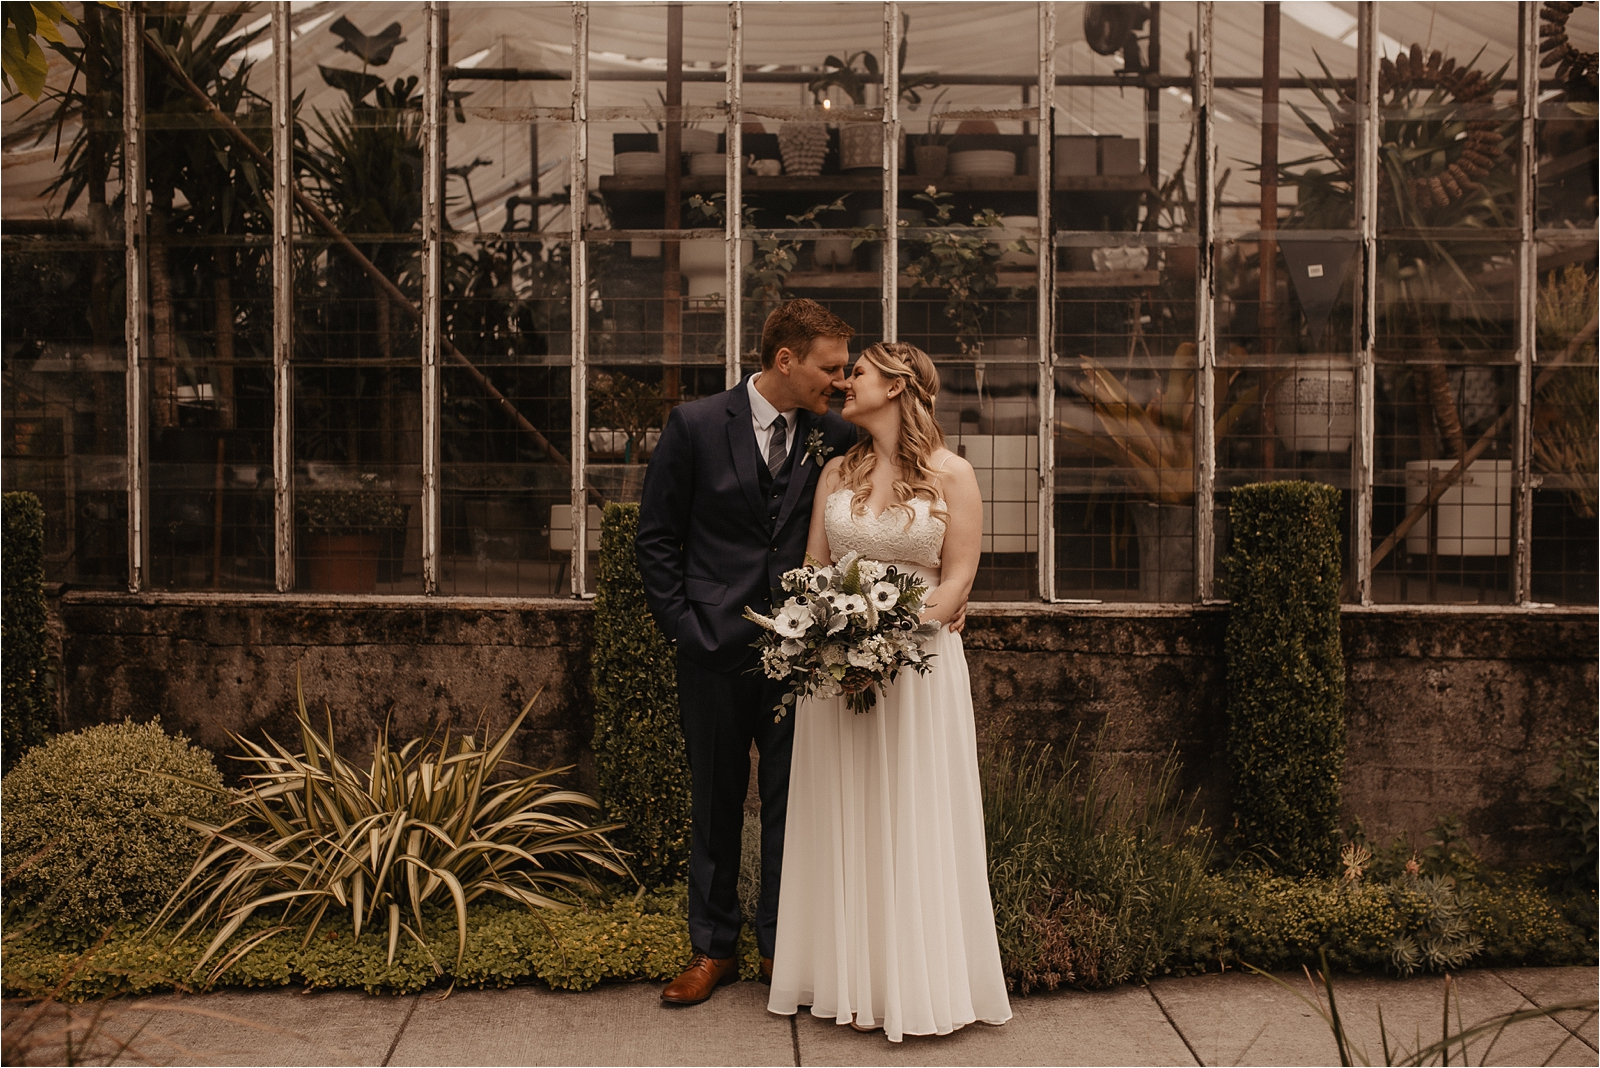 Castaway Urban Wedding in Portland Oregon by the Greenhouse